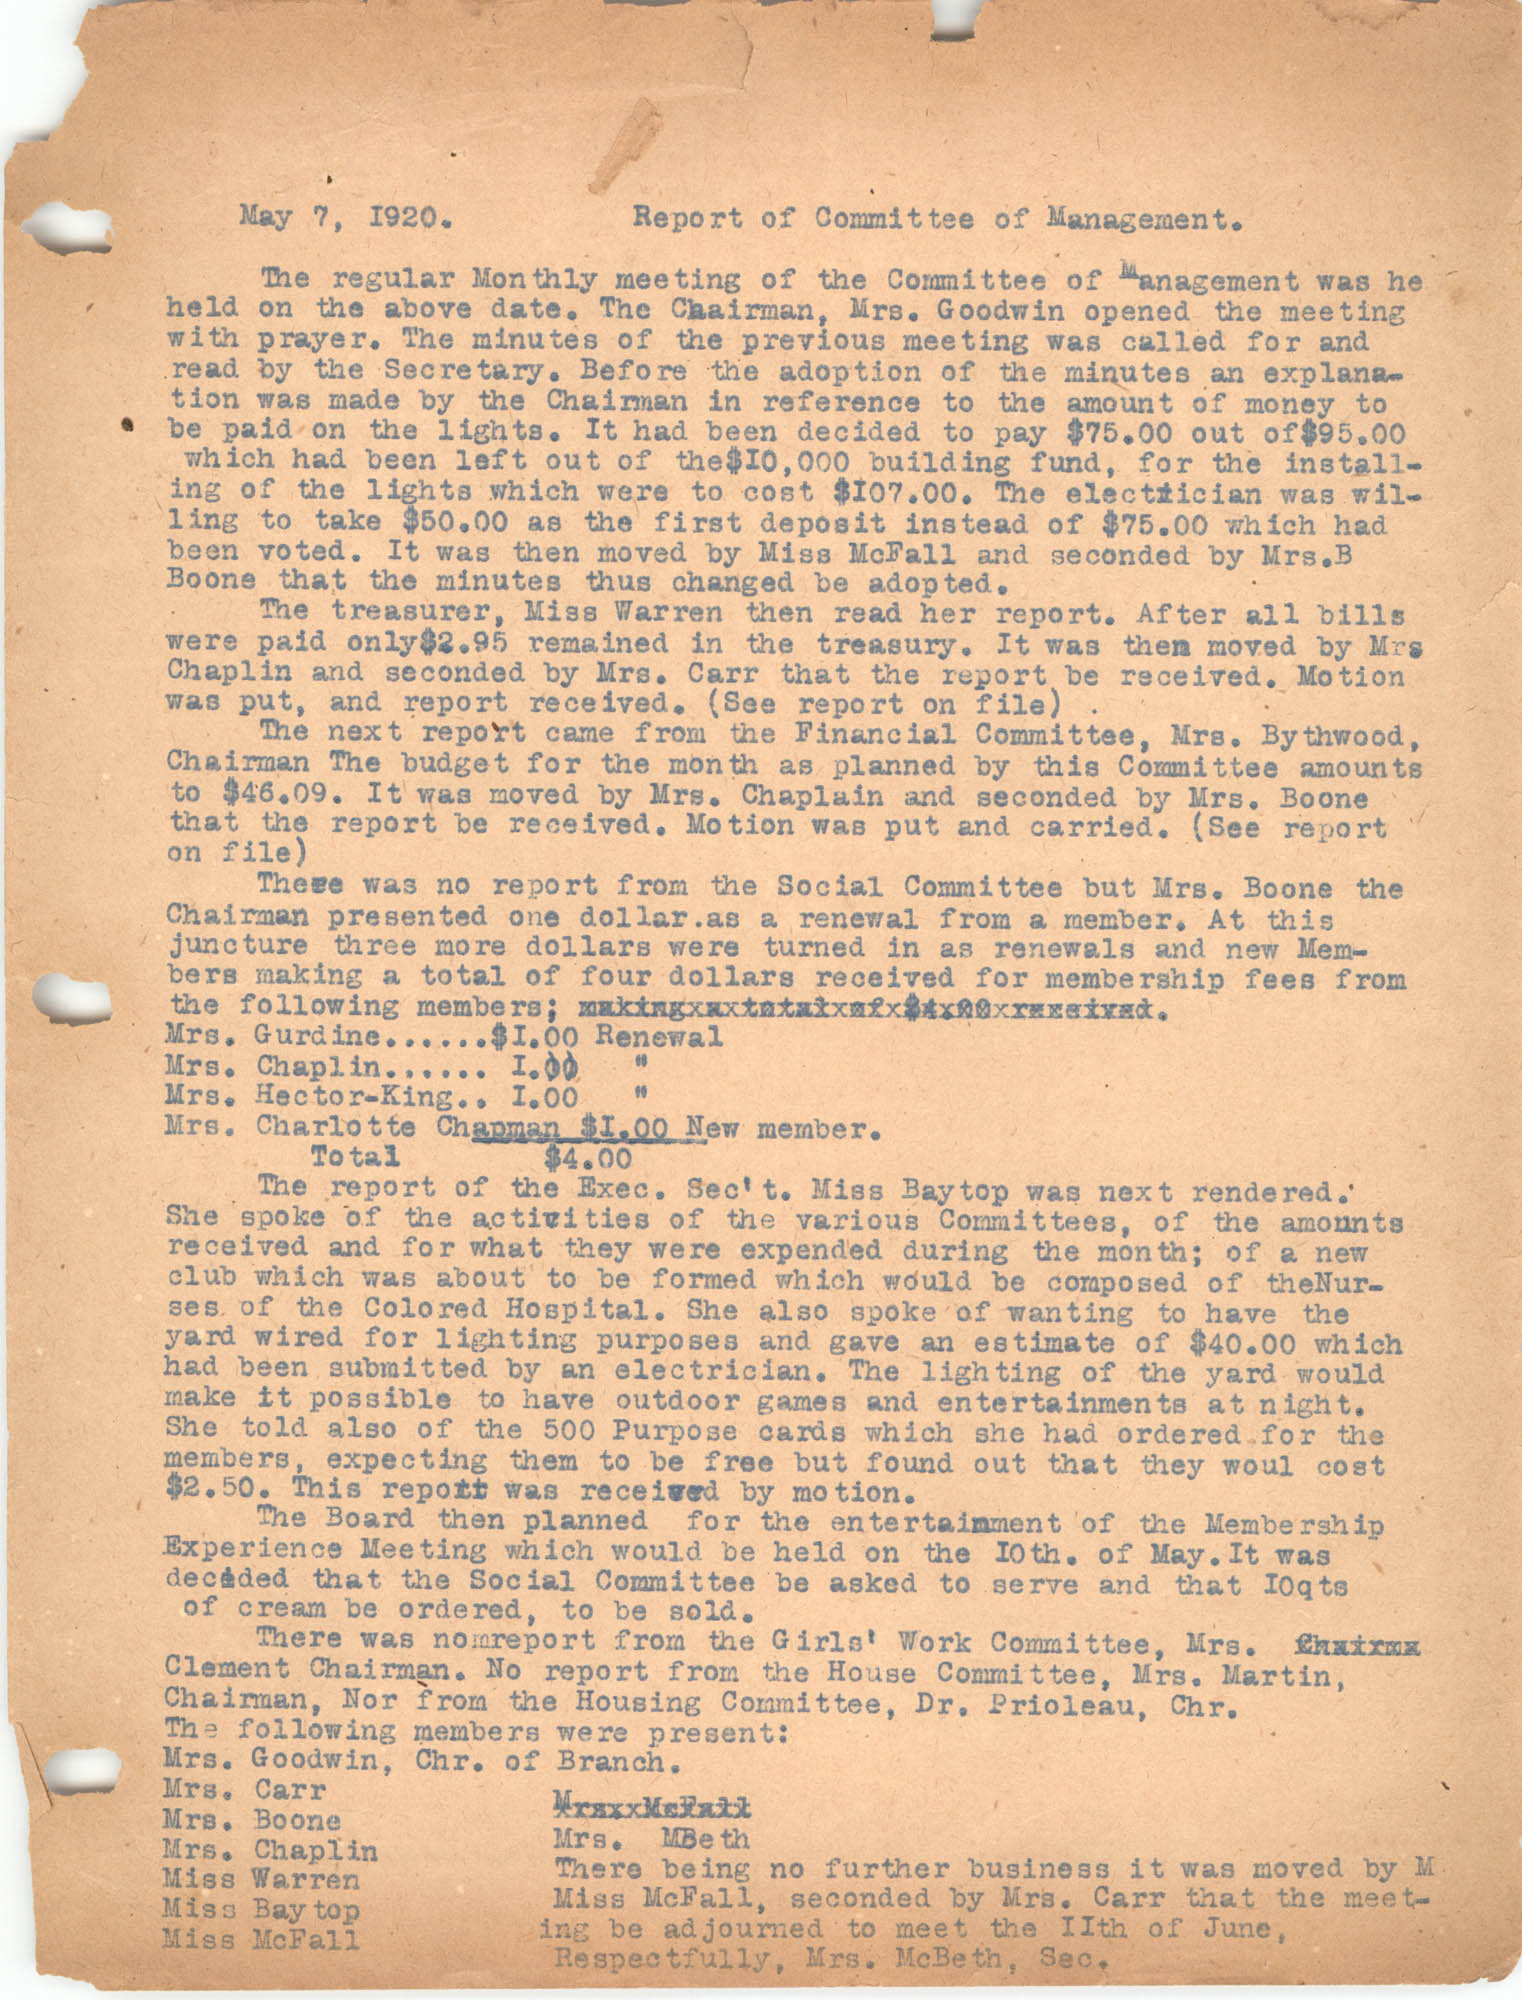 Report of Committee of Management, May 7, 1920